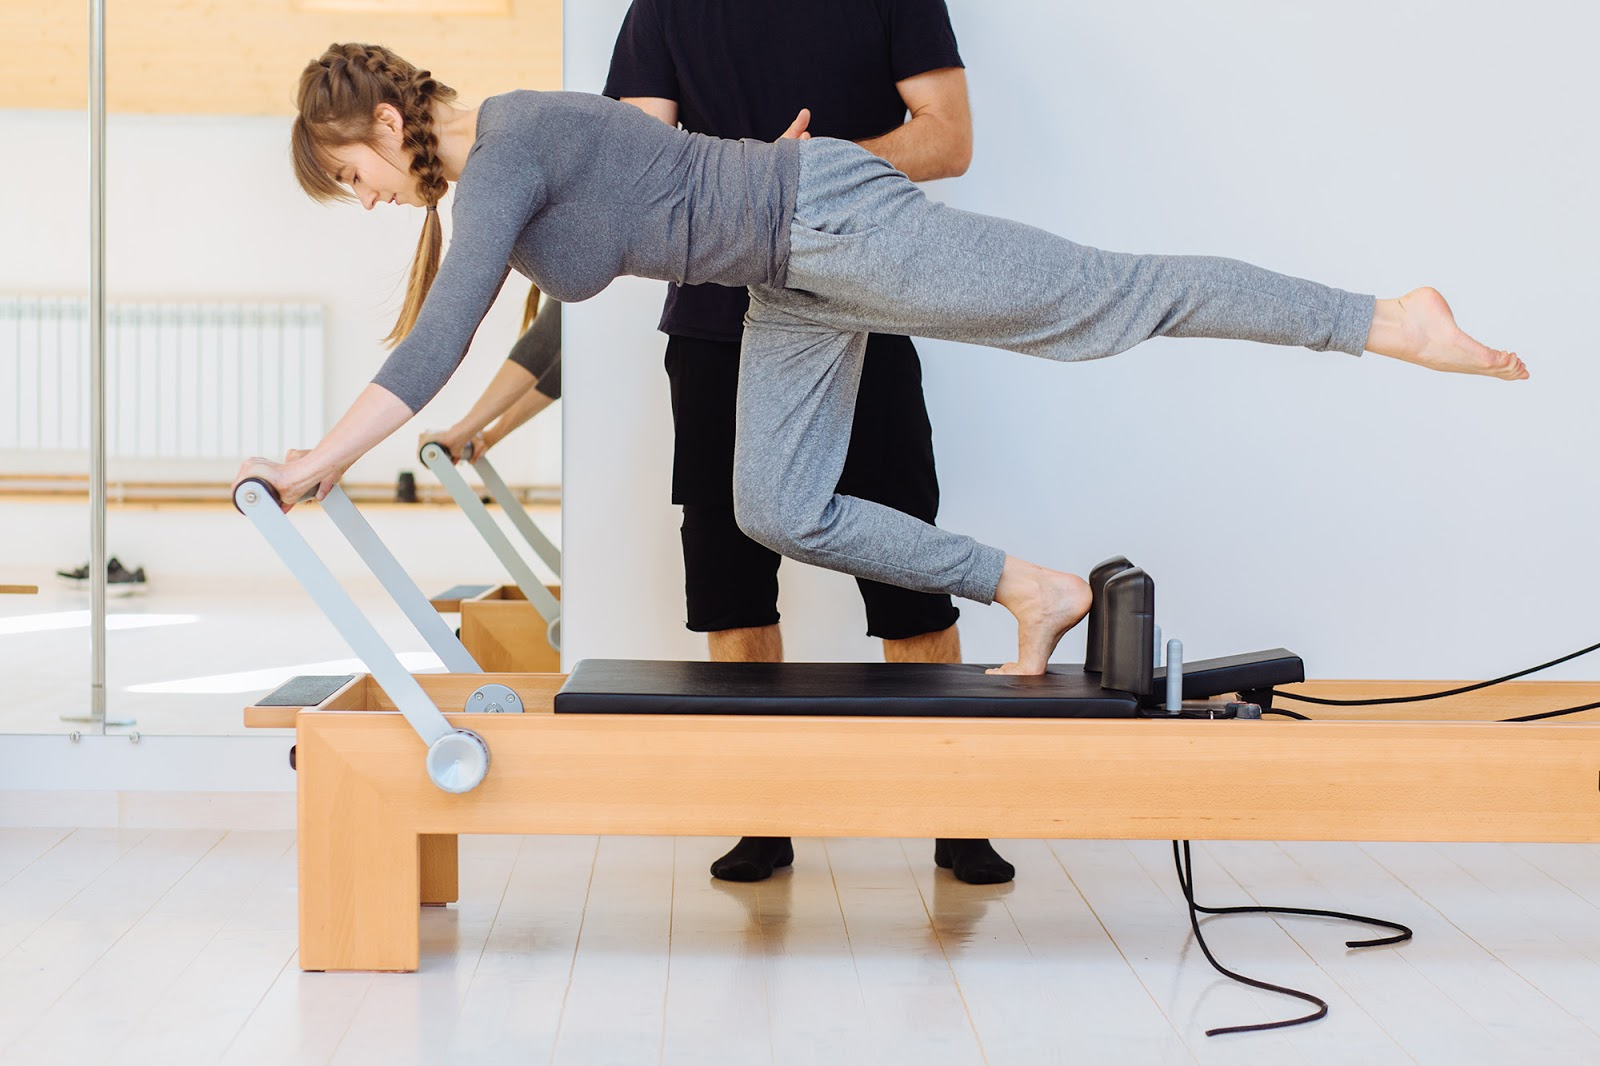 Male Pilates instructor teaches female student challenging exercise on pilates reformer.